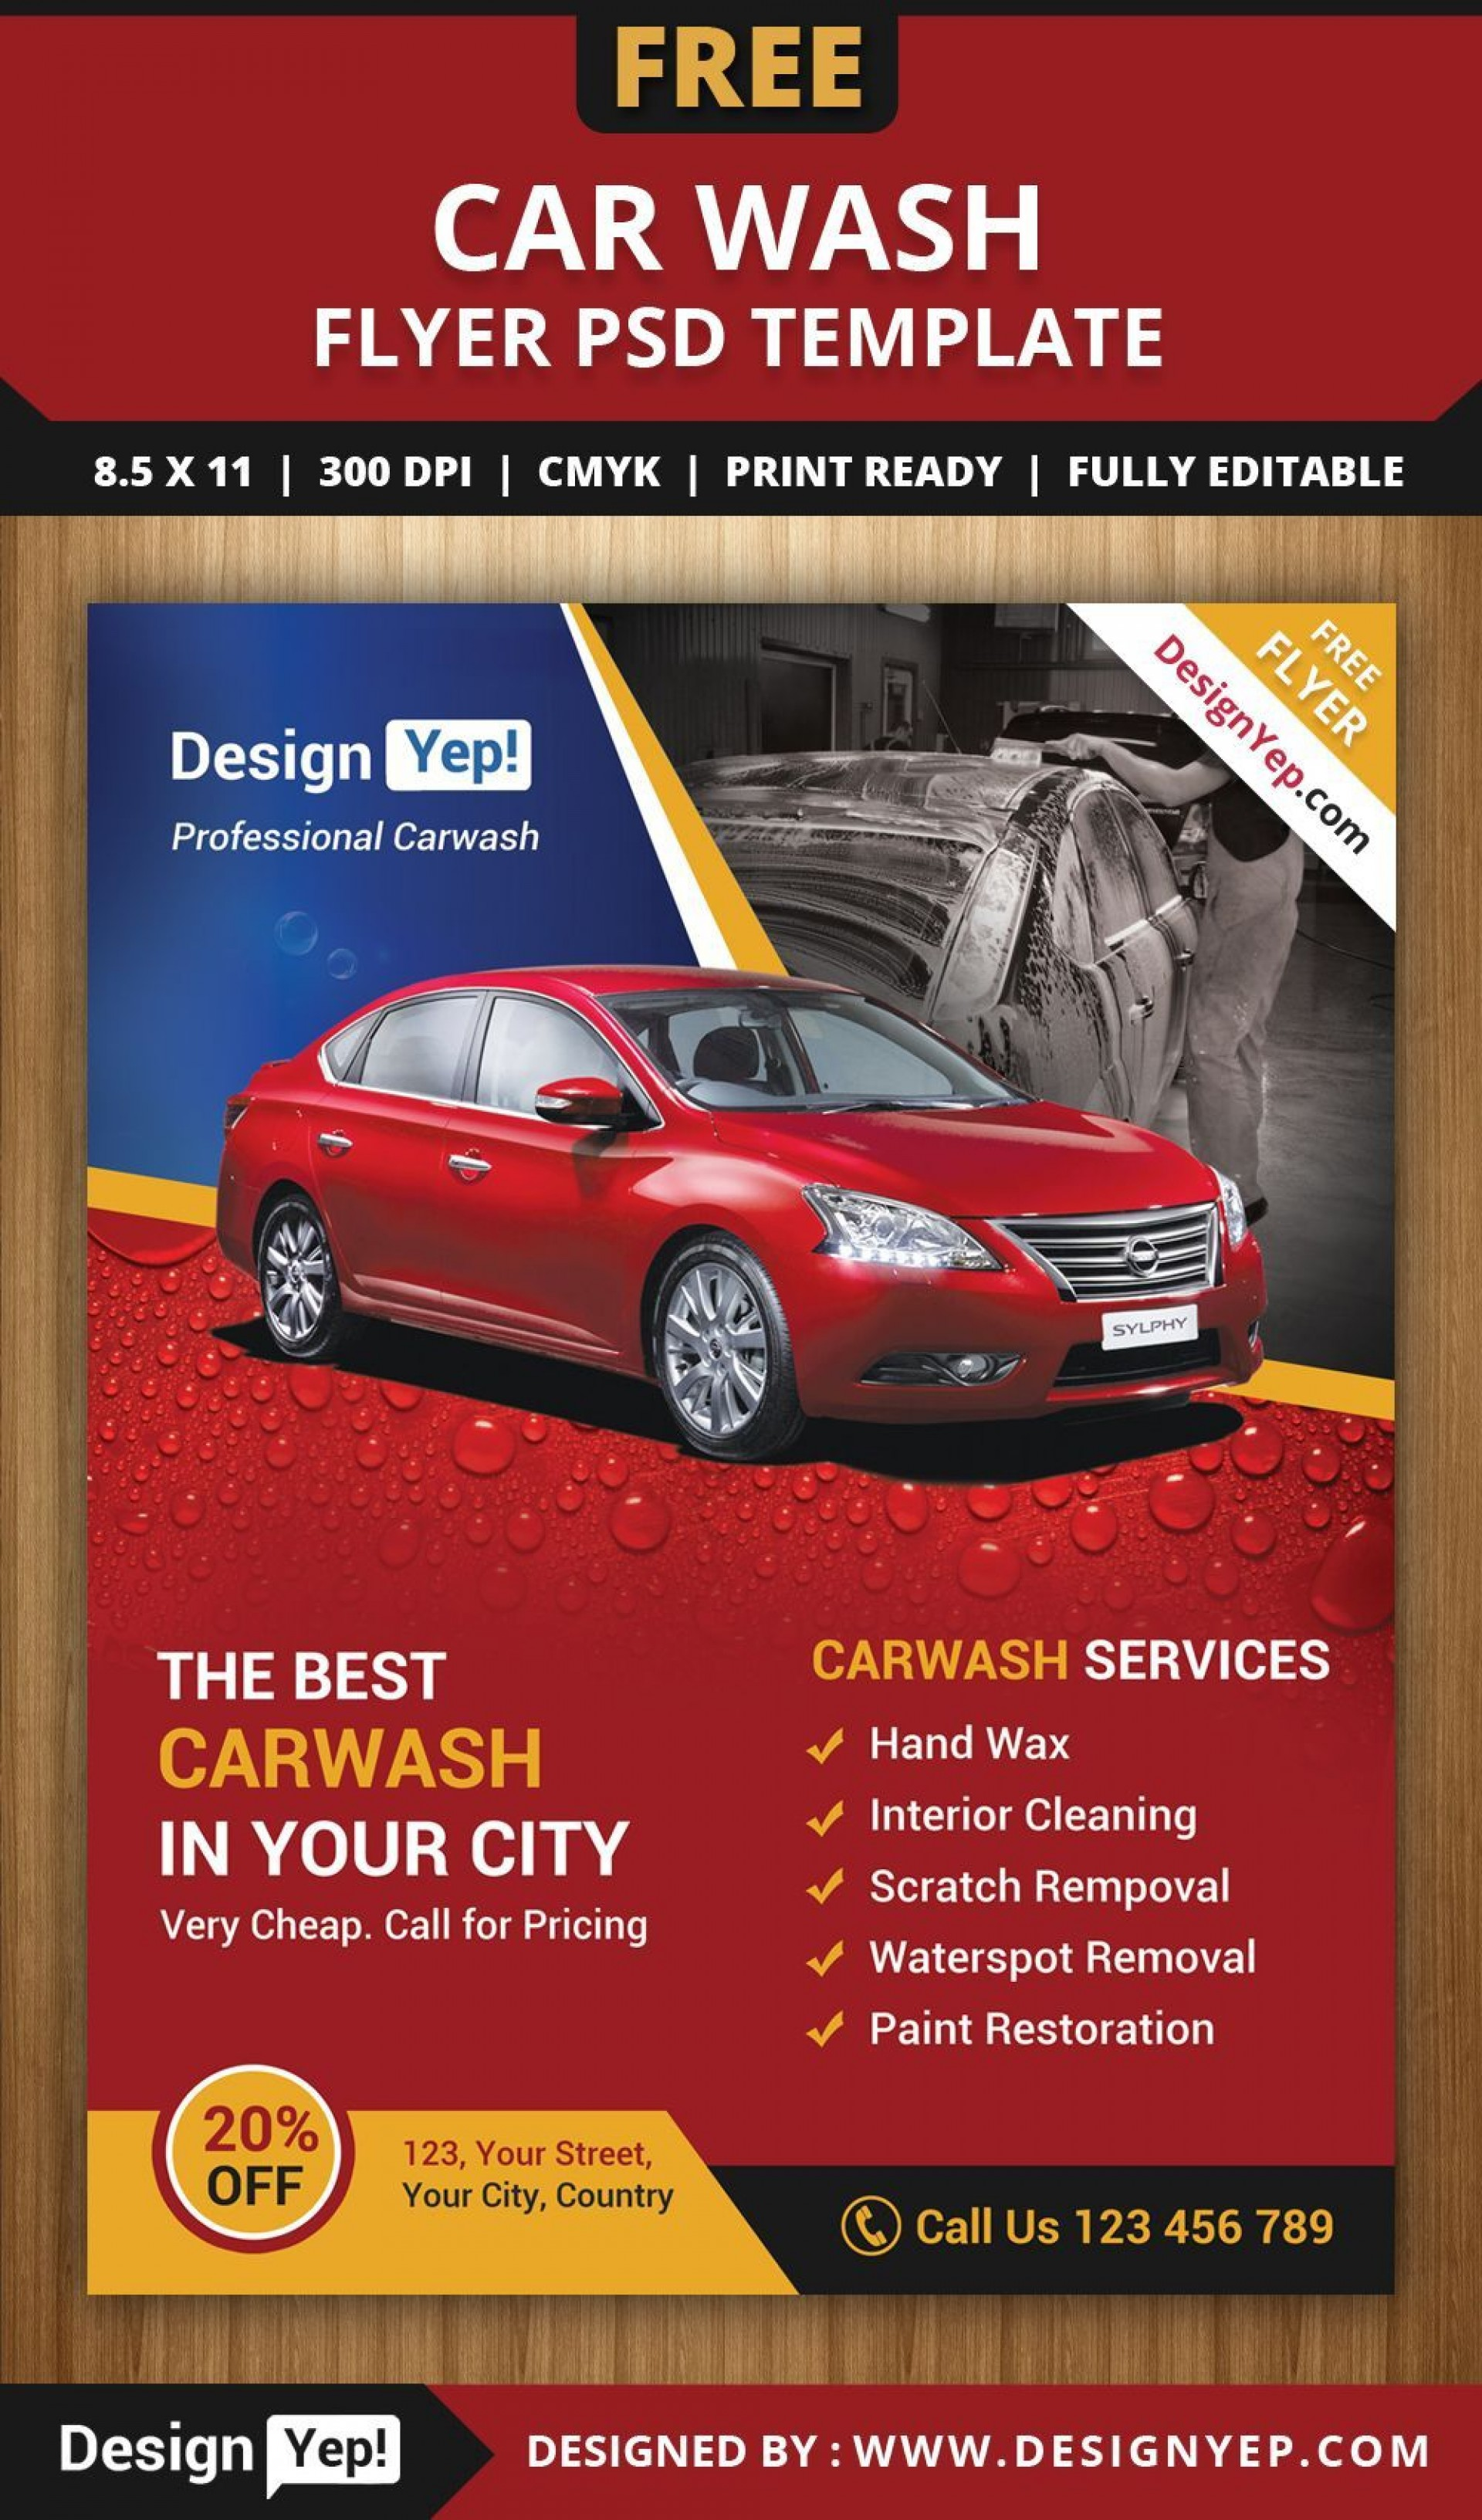 001 Imposing Car Wash Flyer Template Picture  Free Fundraiser Download1920